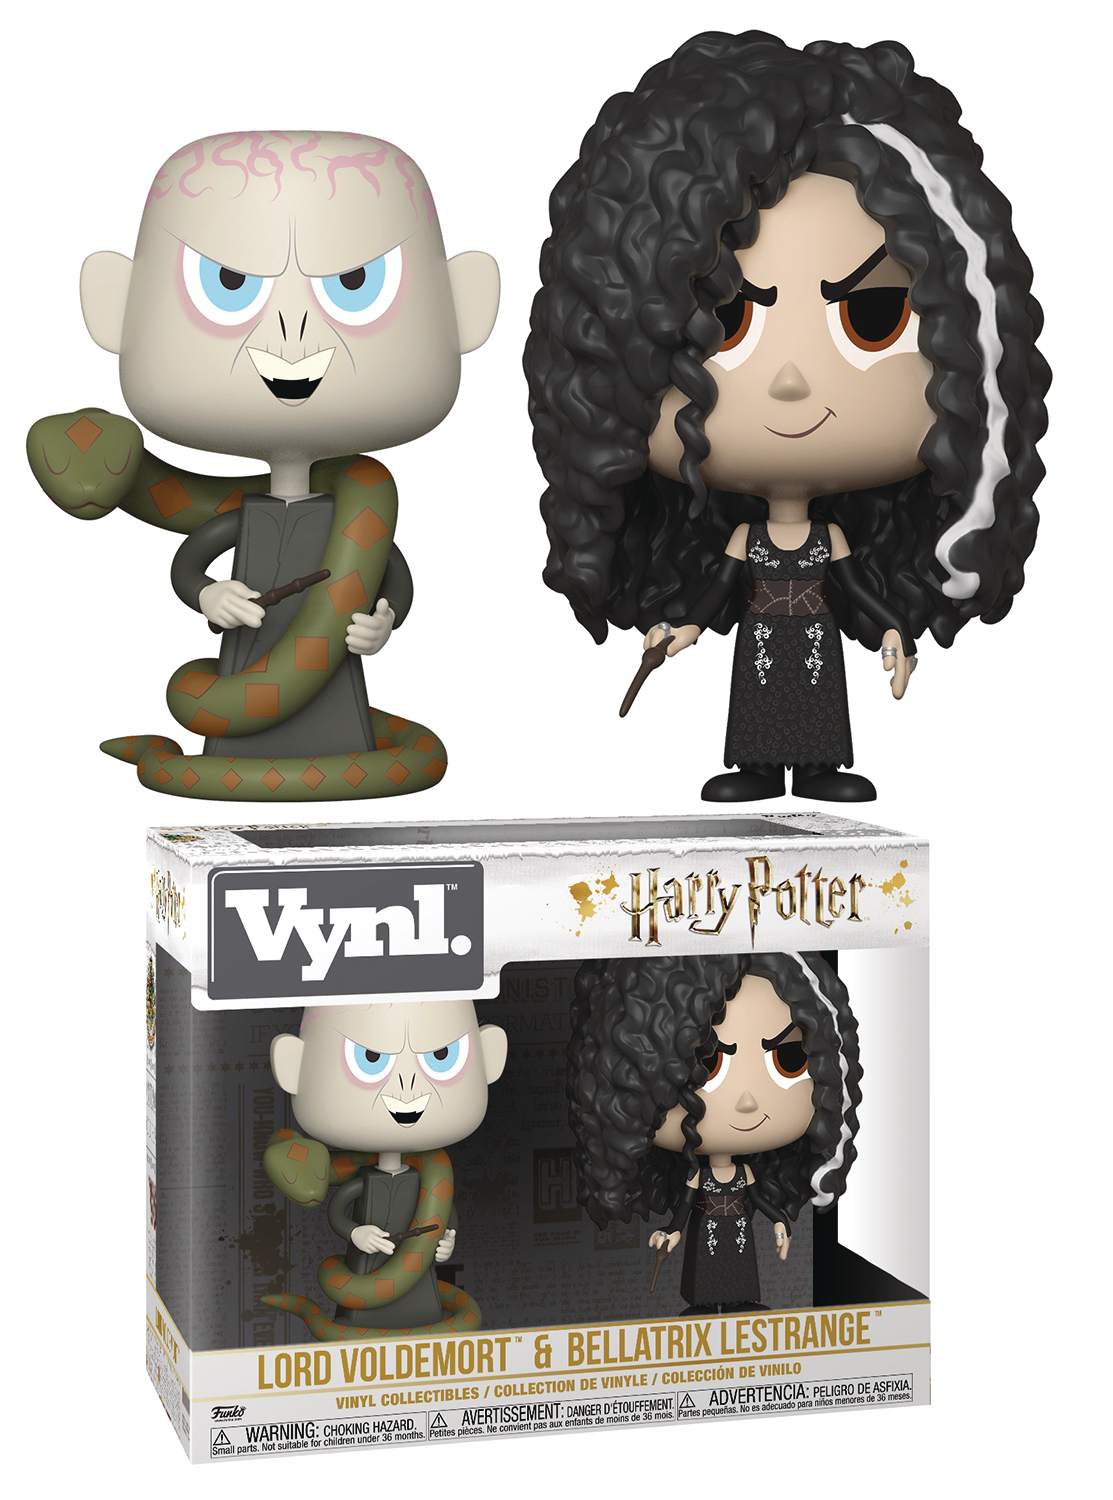 VYNL HARRY POTTER S5 BELLATRIX & VOLDEMORT VIN FIG 2PK